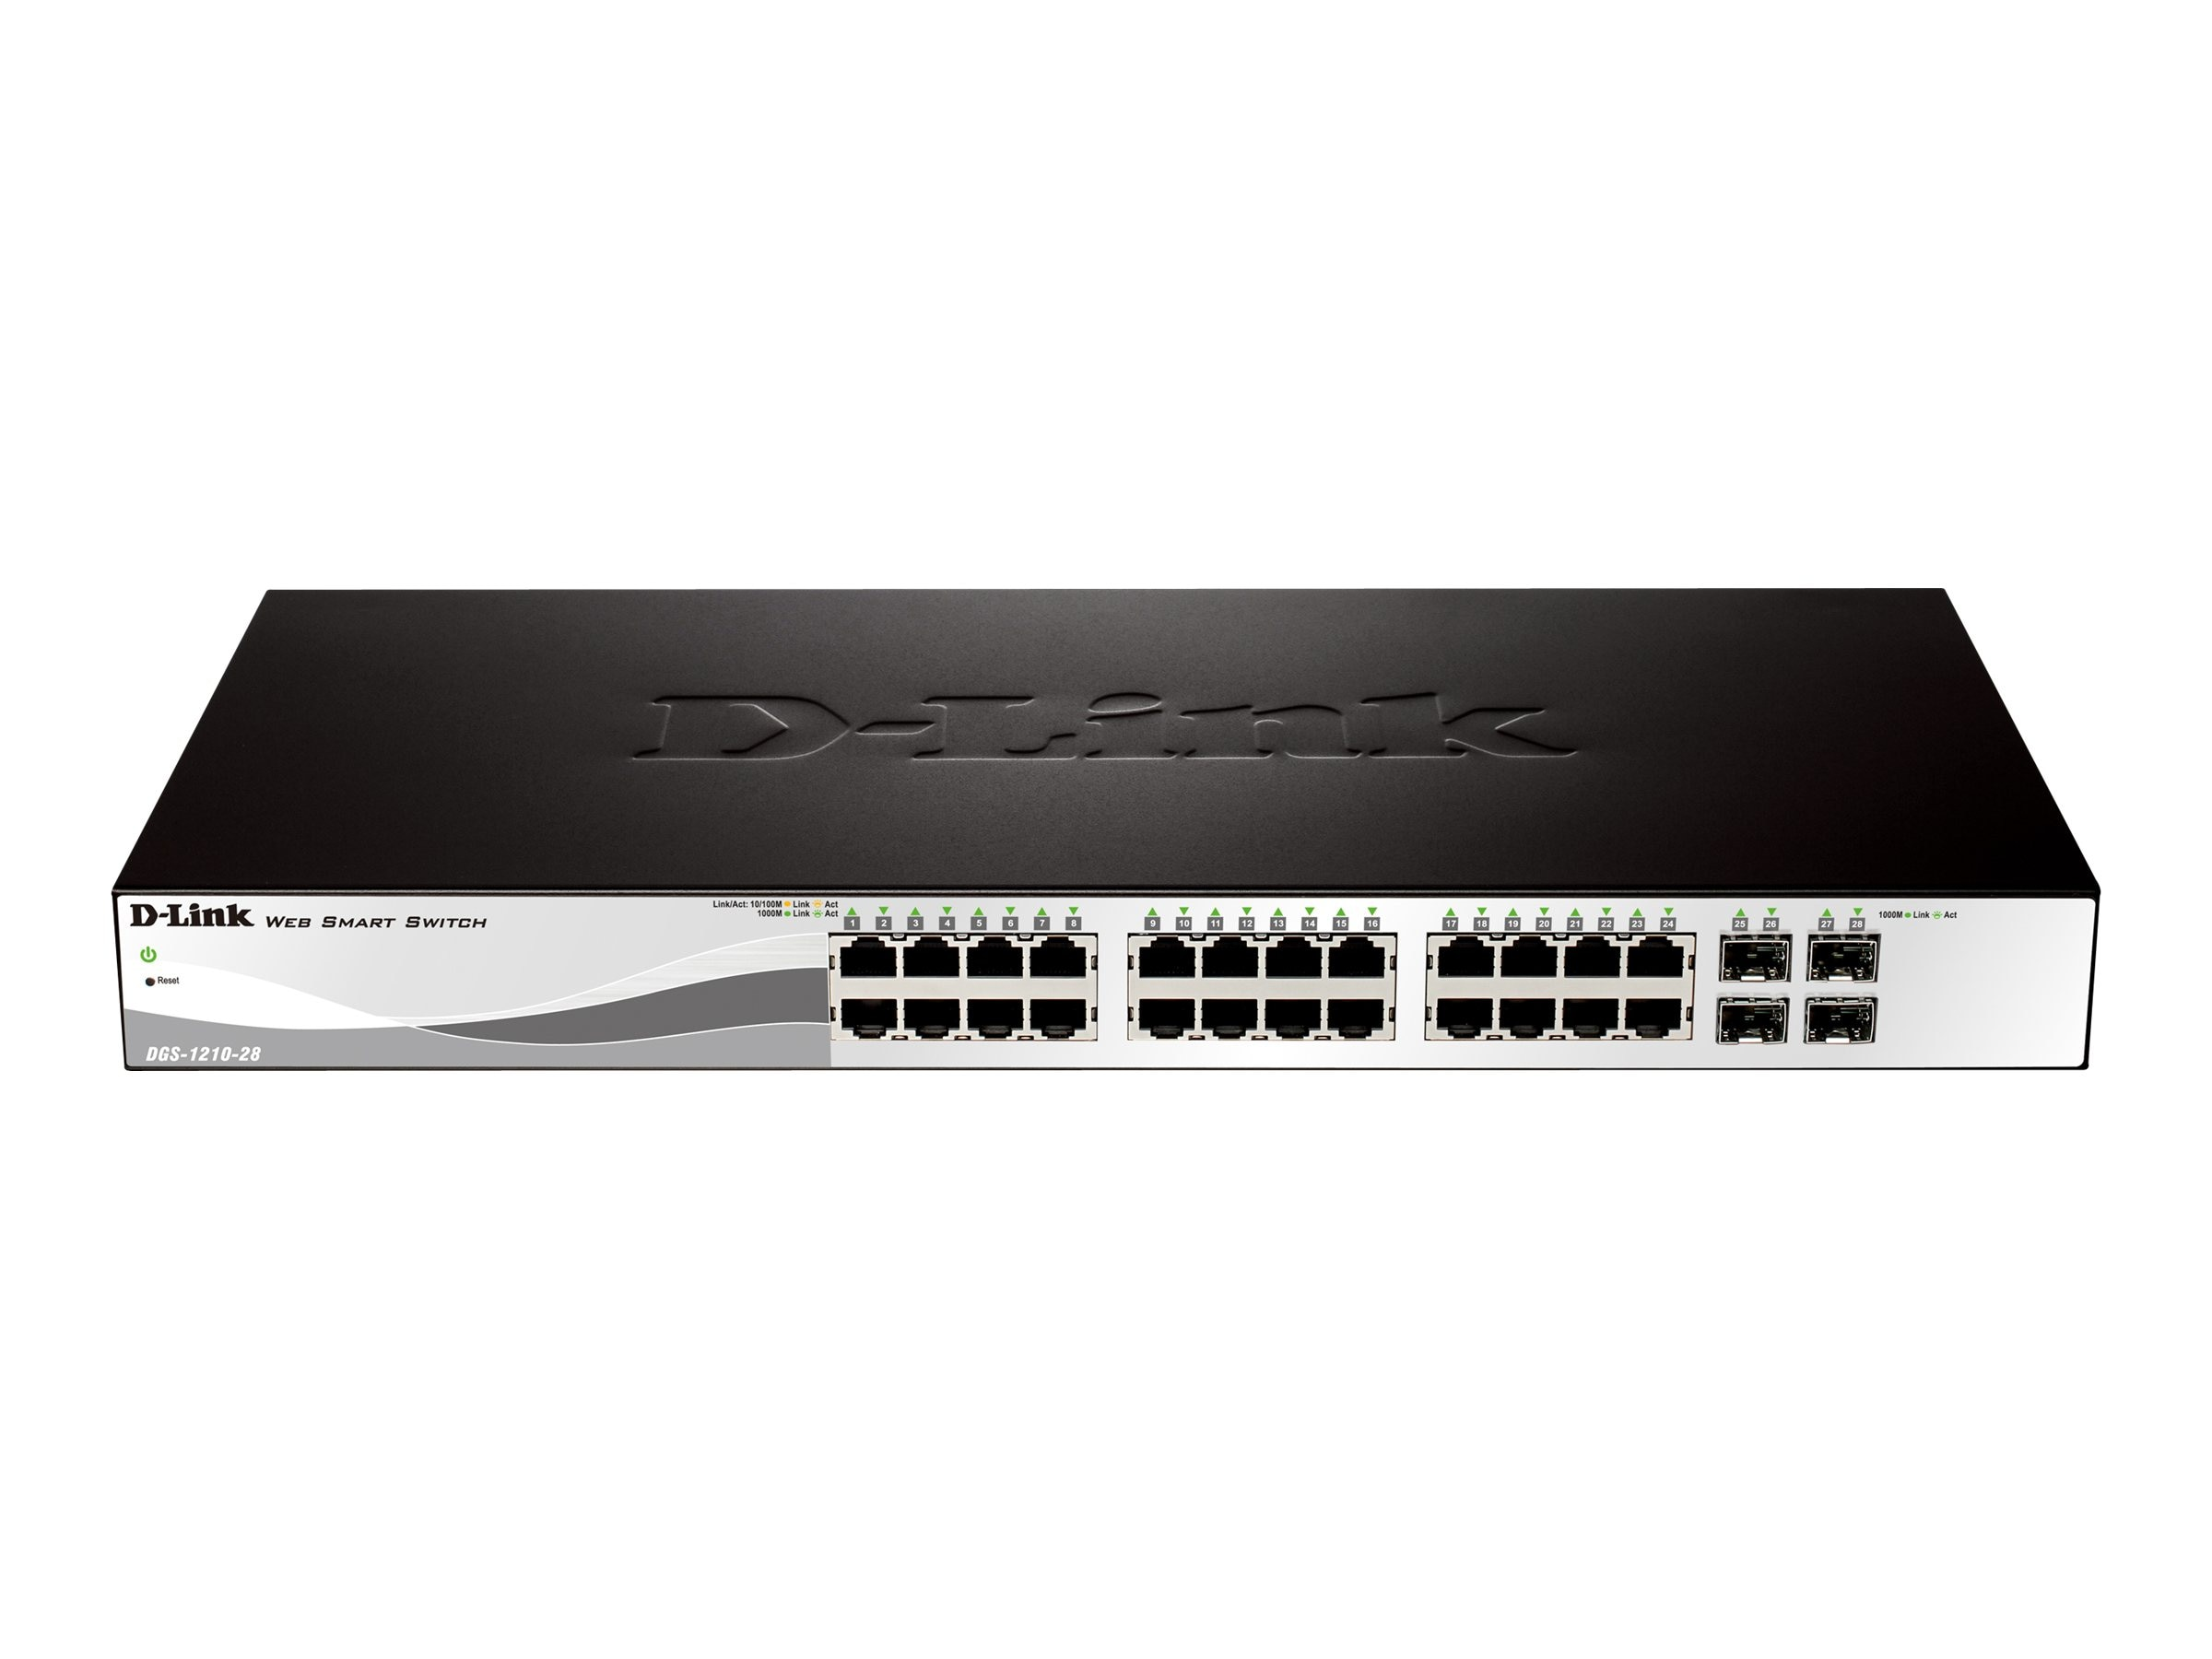 D-Link 24 Port Gig Web Smart Switch, DGS-1210-28